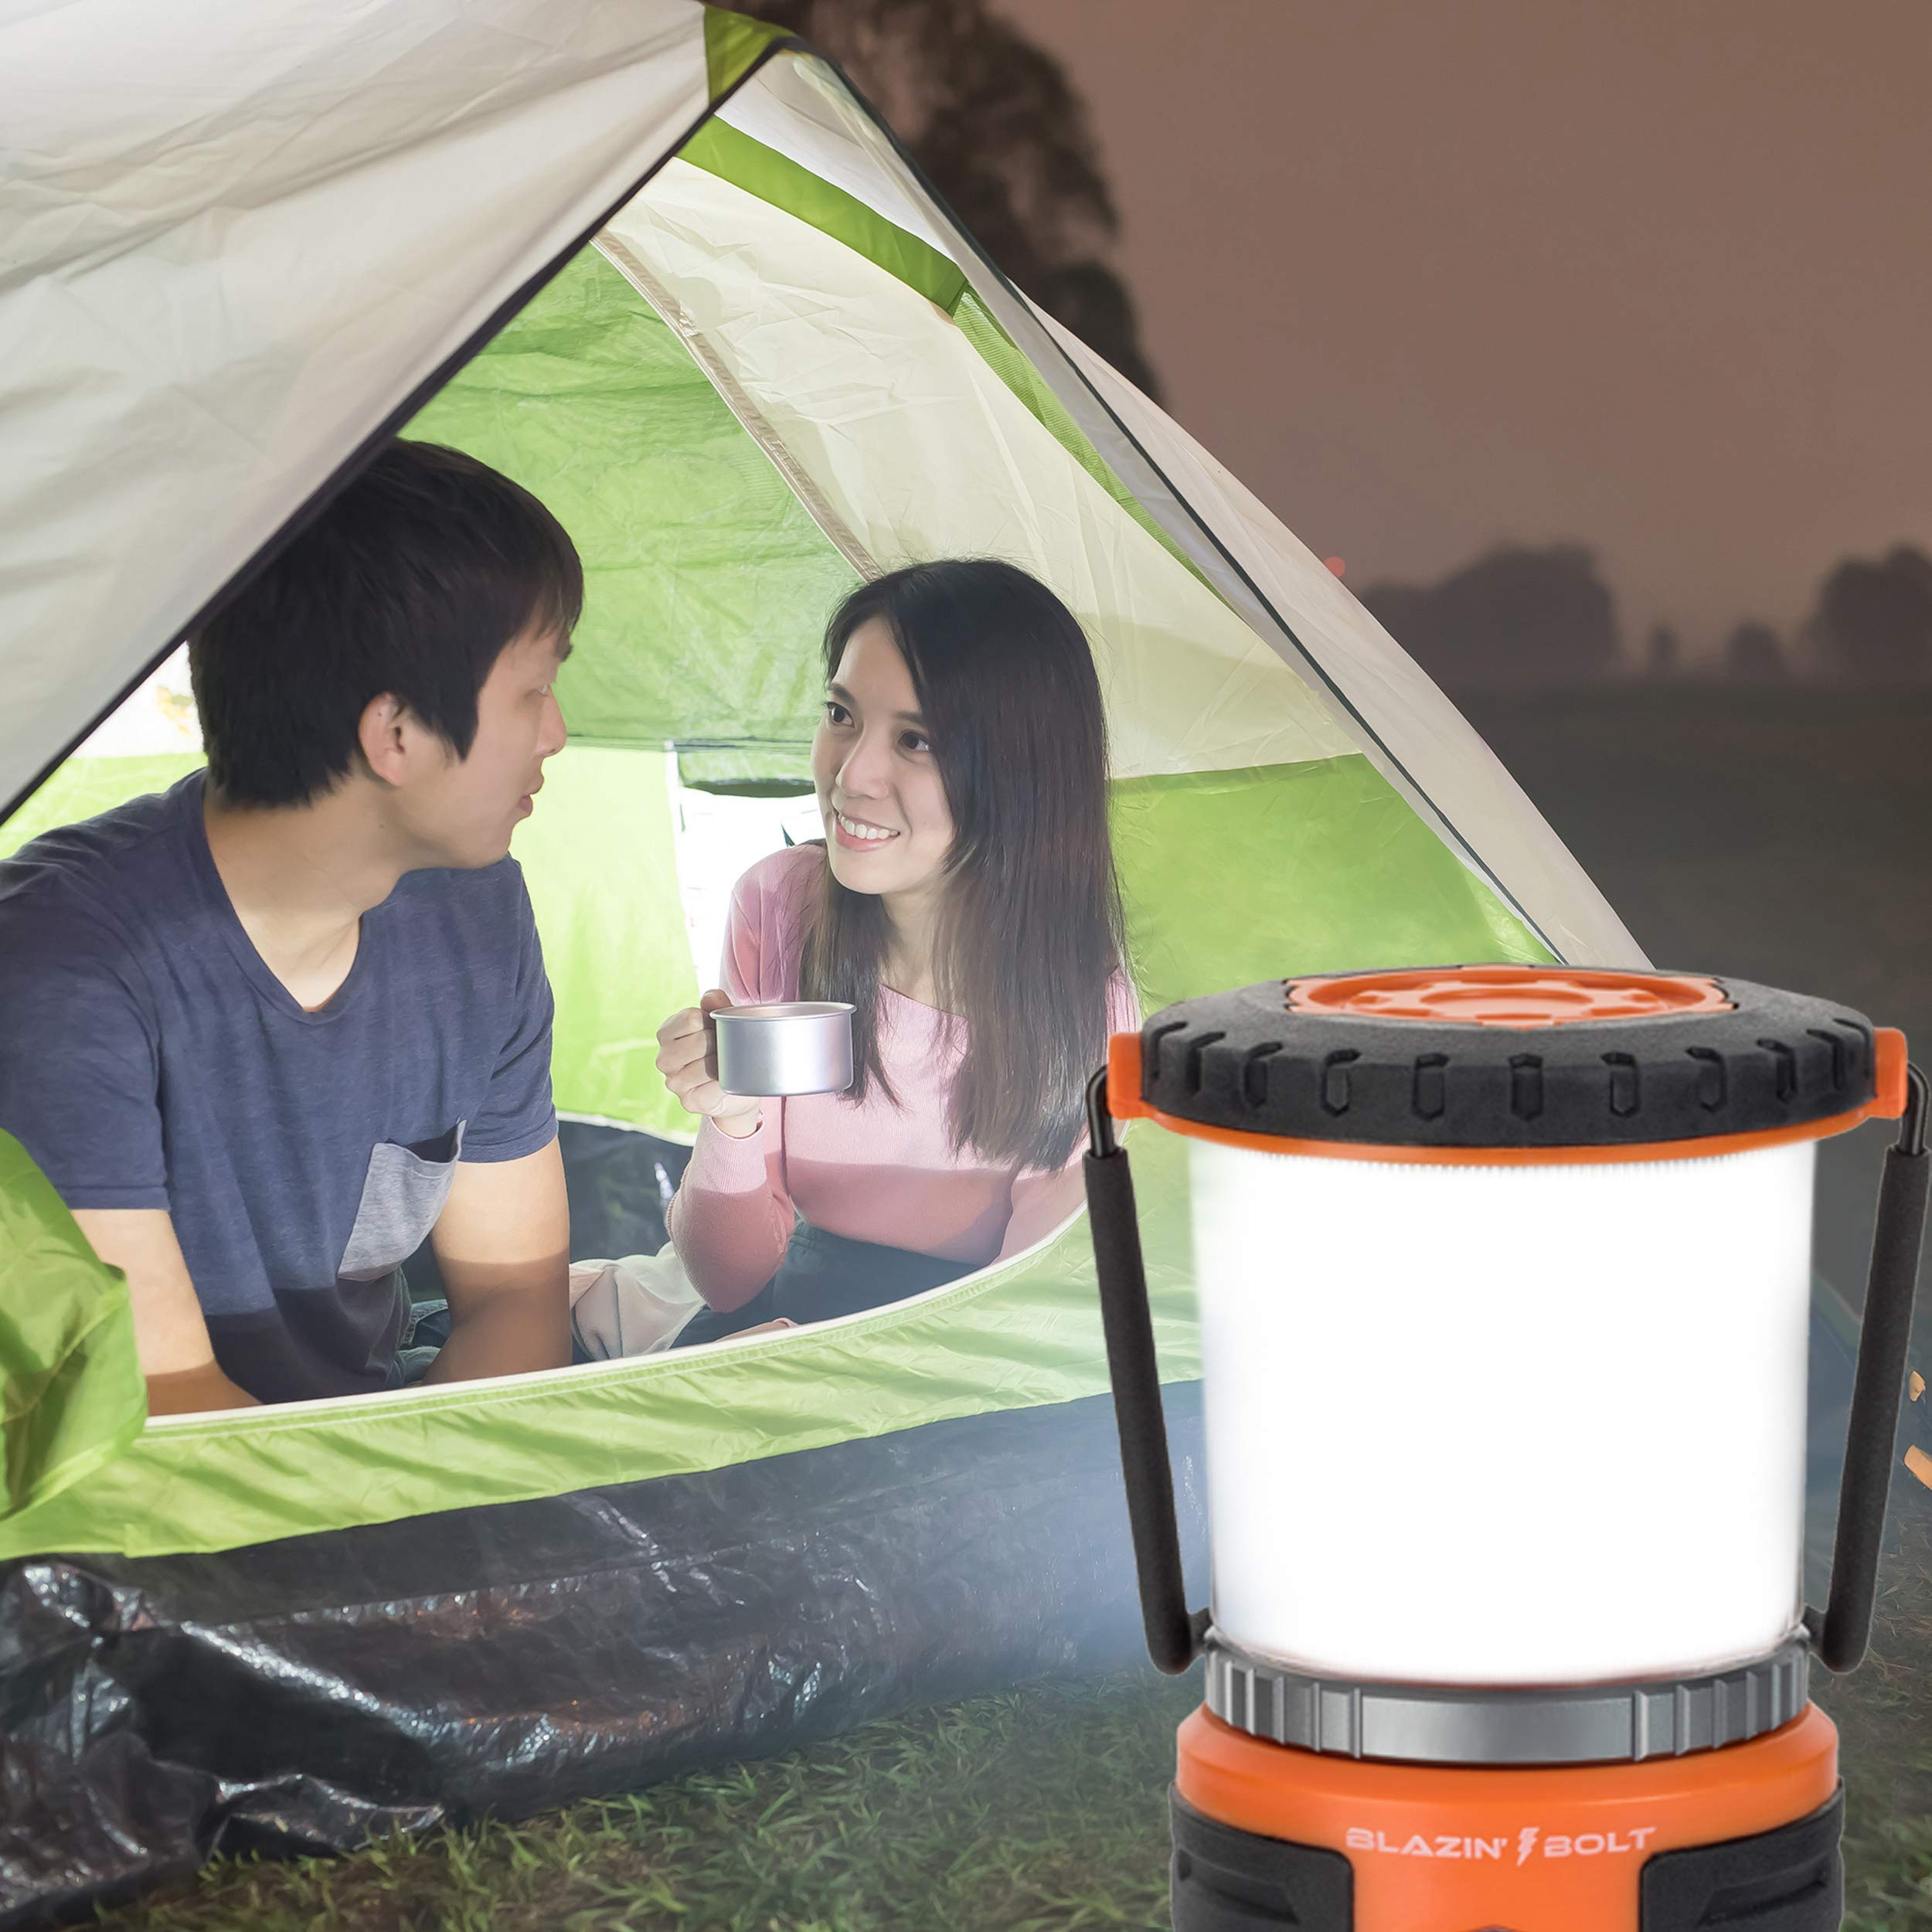 Brightest Rechargeable Lantern LED | Hurricane, Blackout, Storm | Power Bank Light | 400 Hour Runtime (Orange) by Blazin' Bison (Image #7)